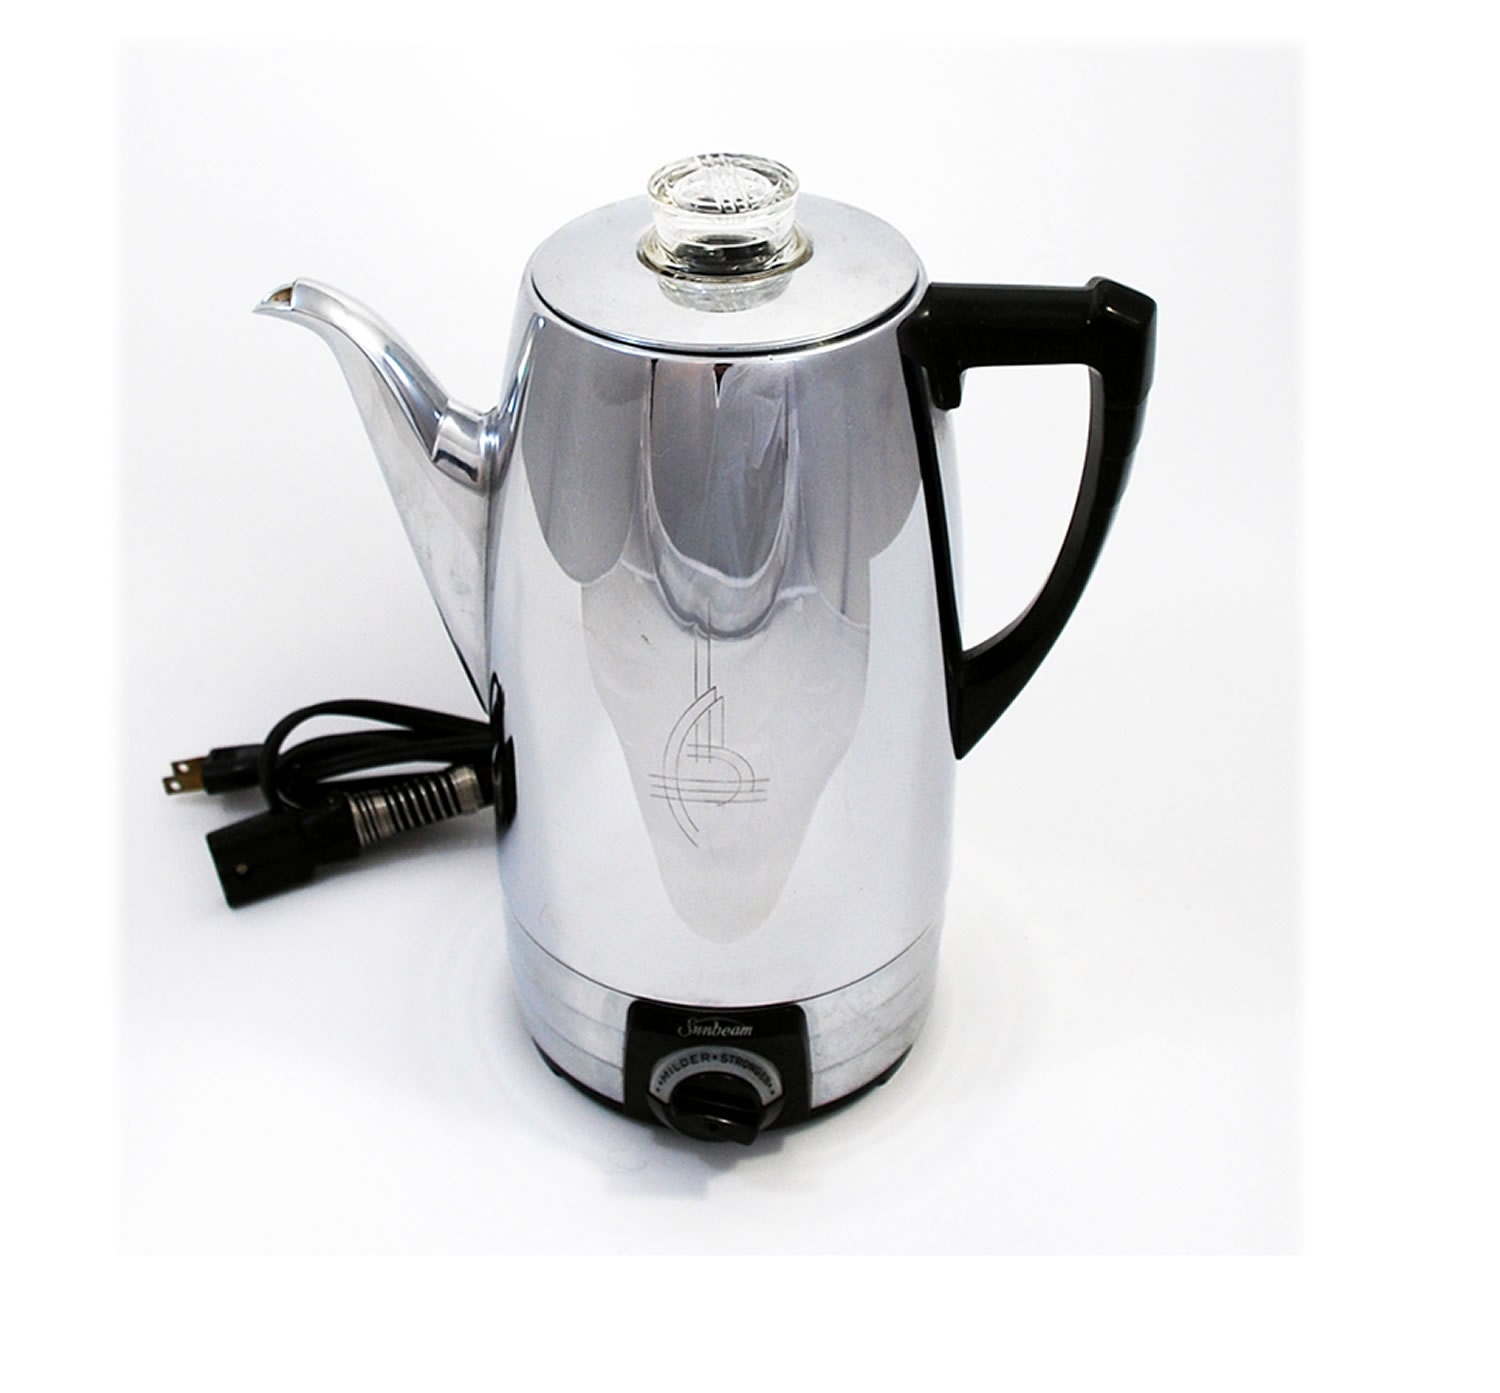 Sunbeam Percolator Coffee Maker : Unavailable Listing on Etsy